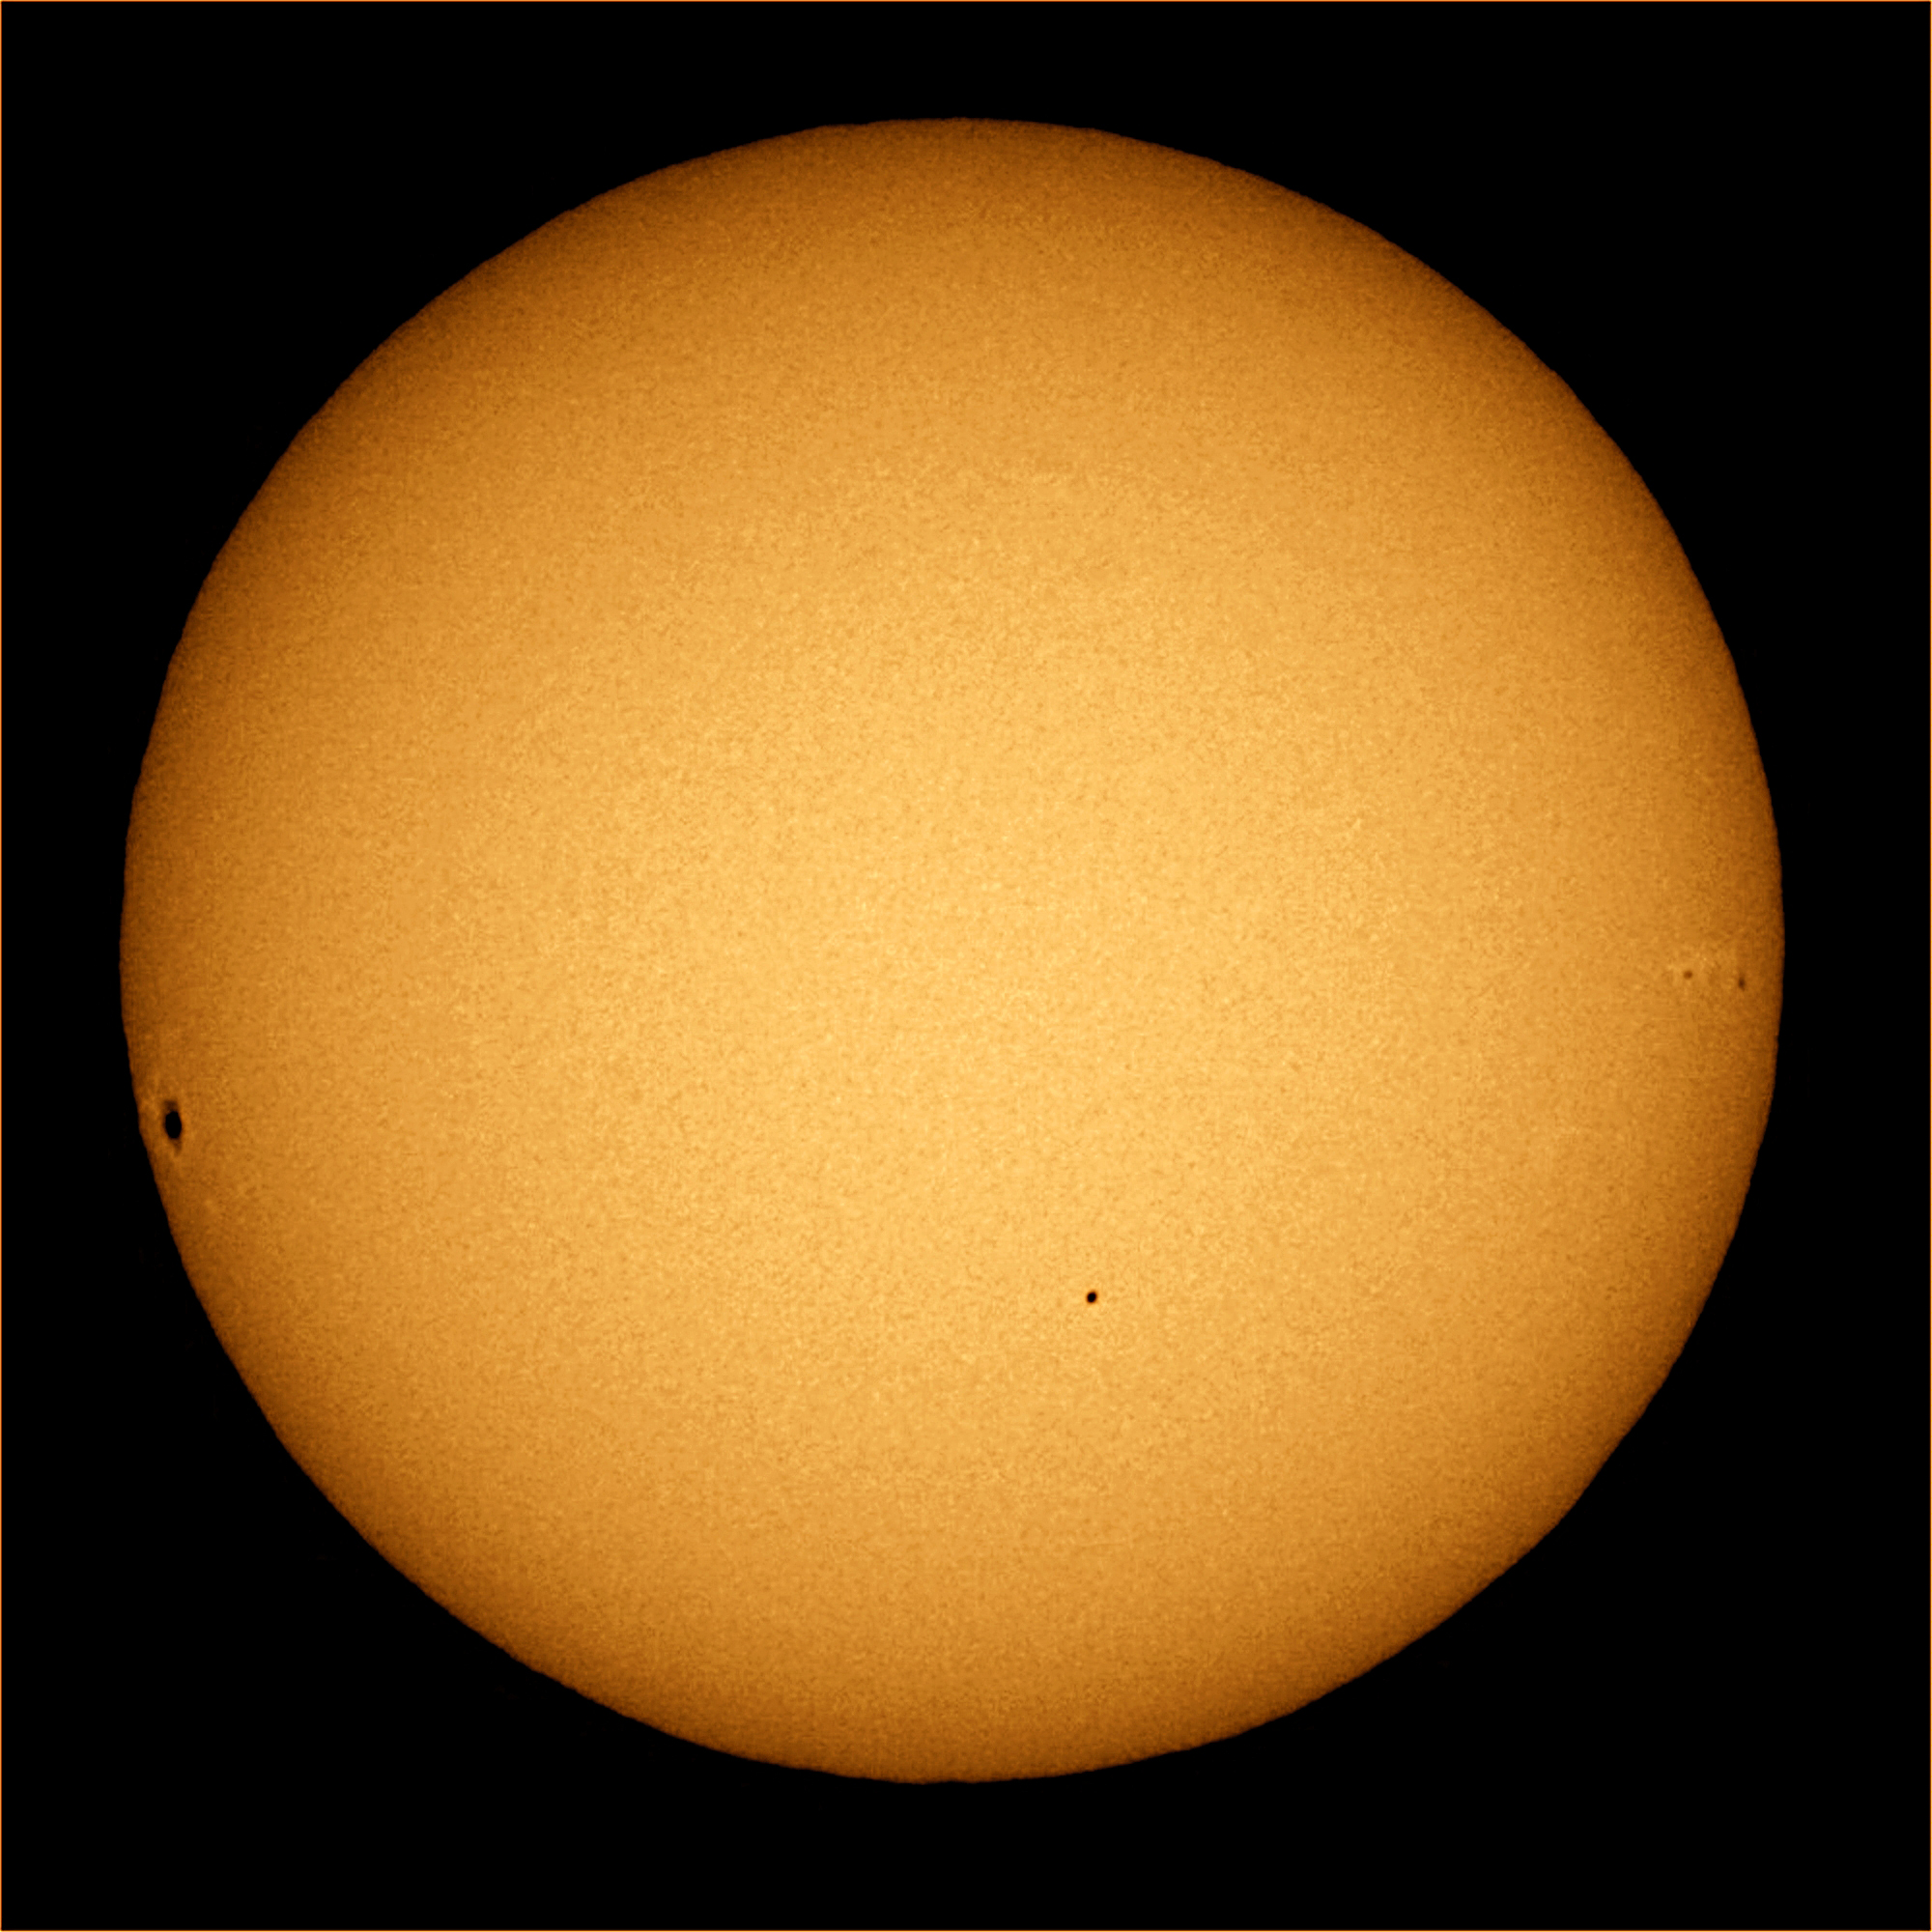 Transit of mercury on november 8 2006 with sunspots 921 922 and 923